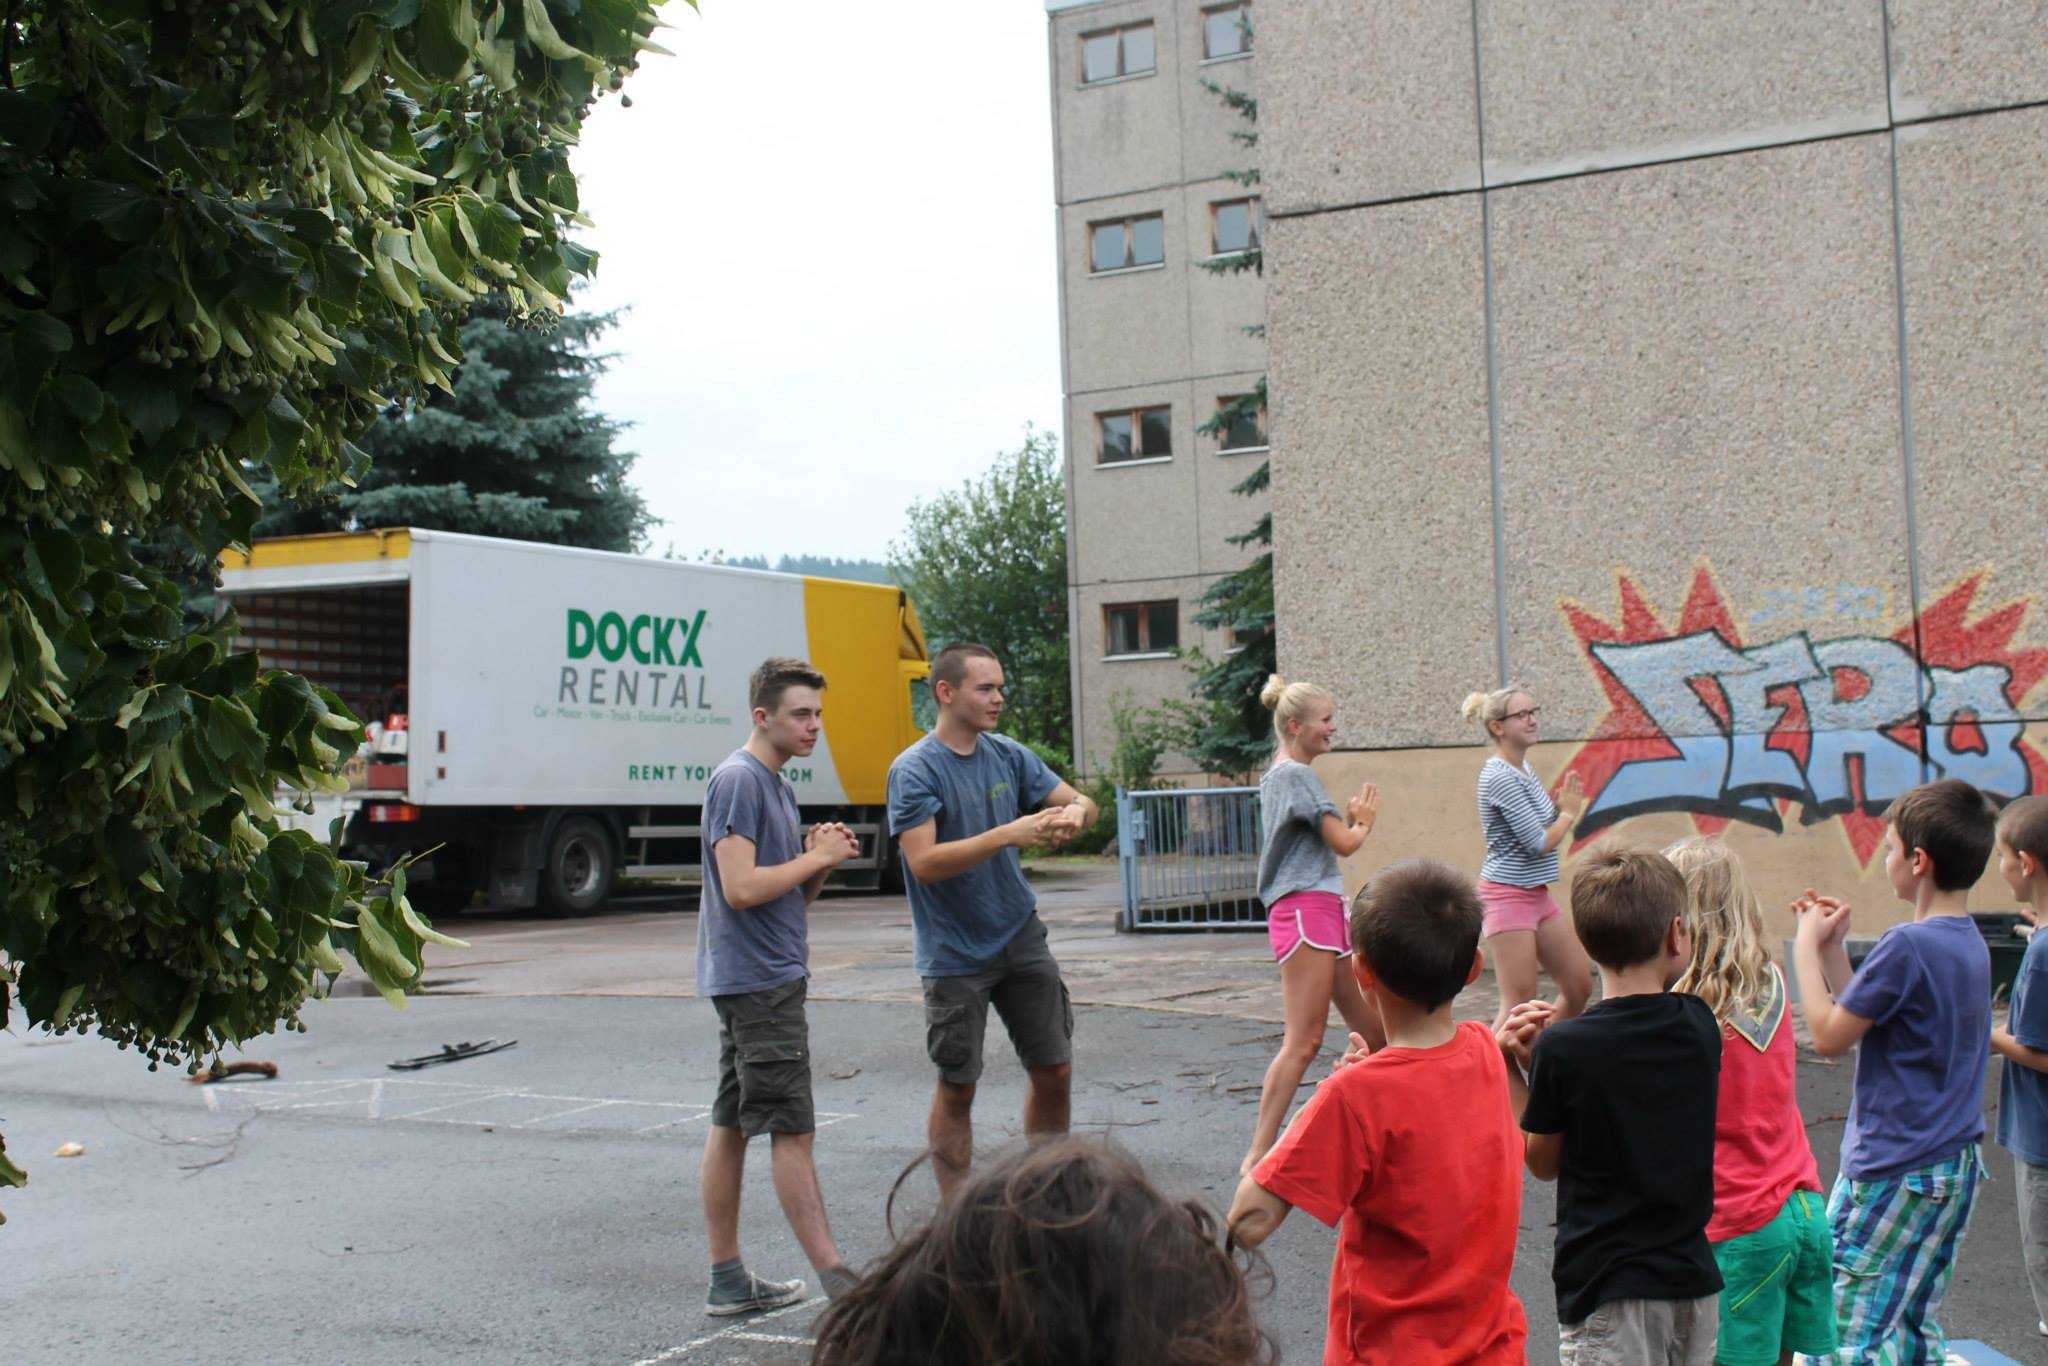 Scouts Kamp Dockx Camion